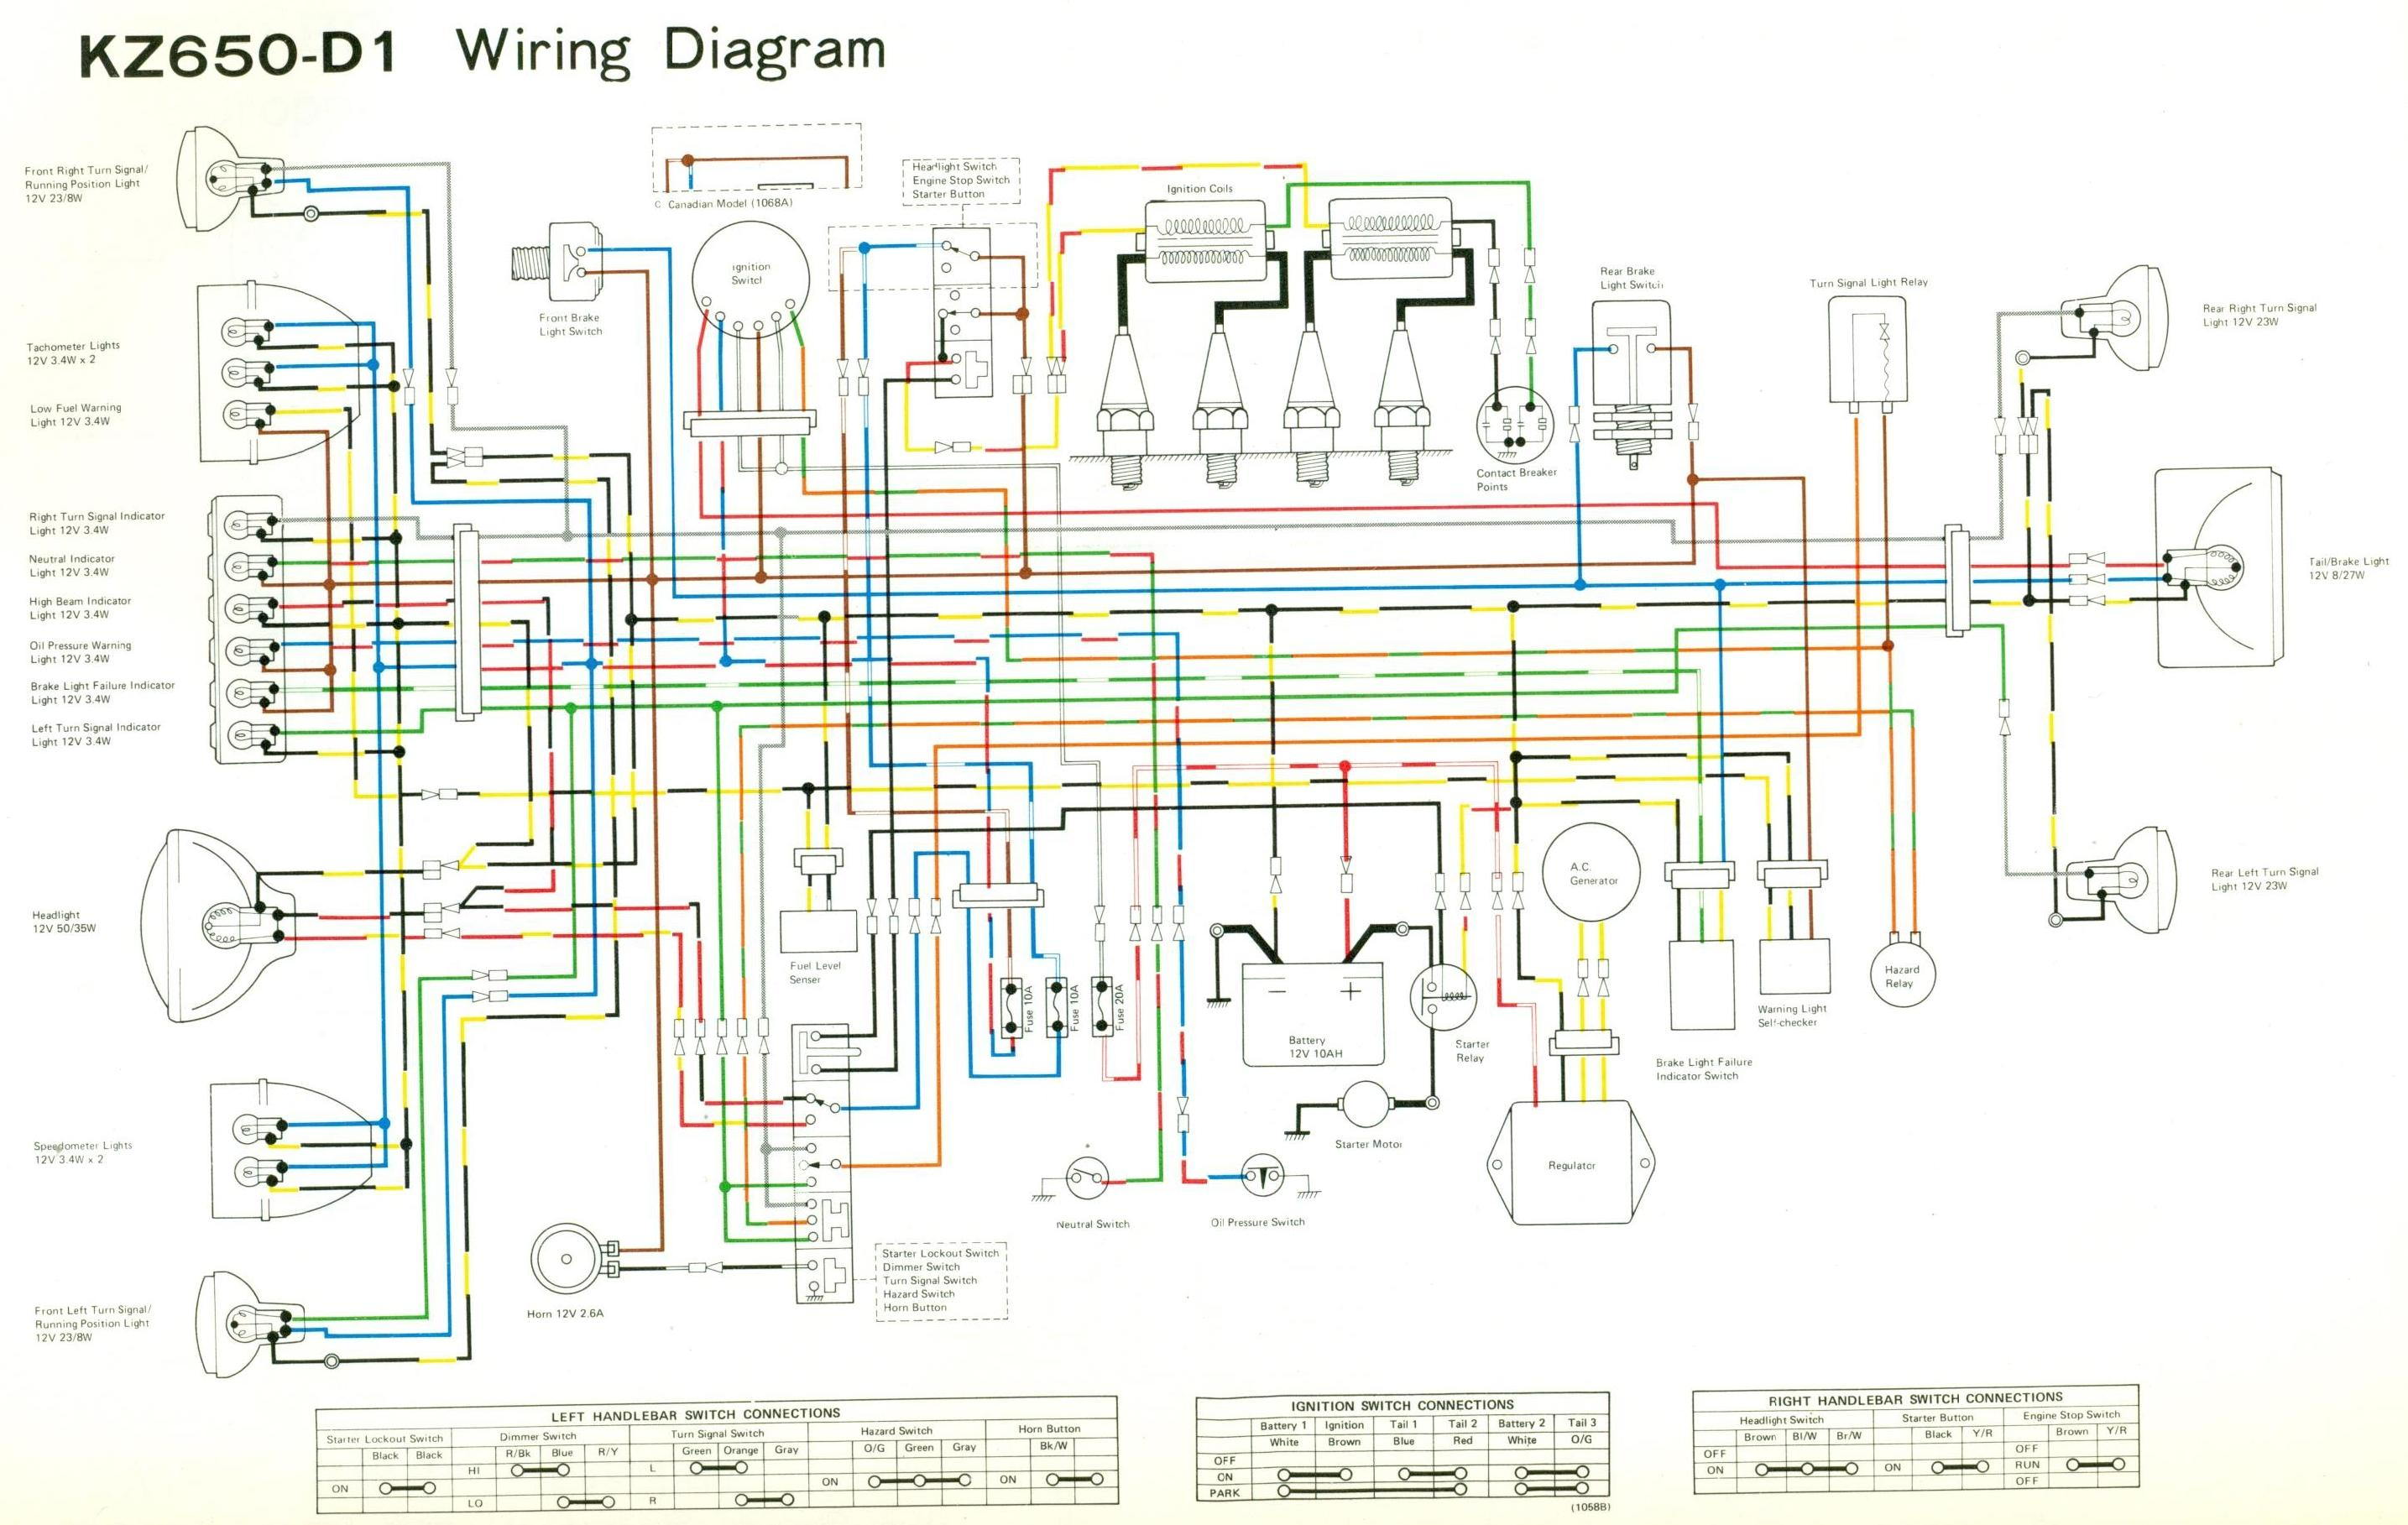 1975 kawasaki wiring diagram wiring diagramIgnition Wiring Diagram 1988 Dodge 360 #7